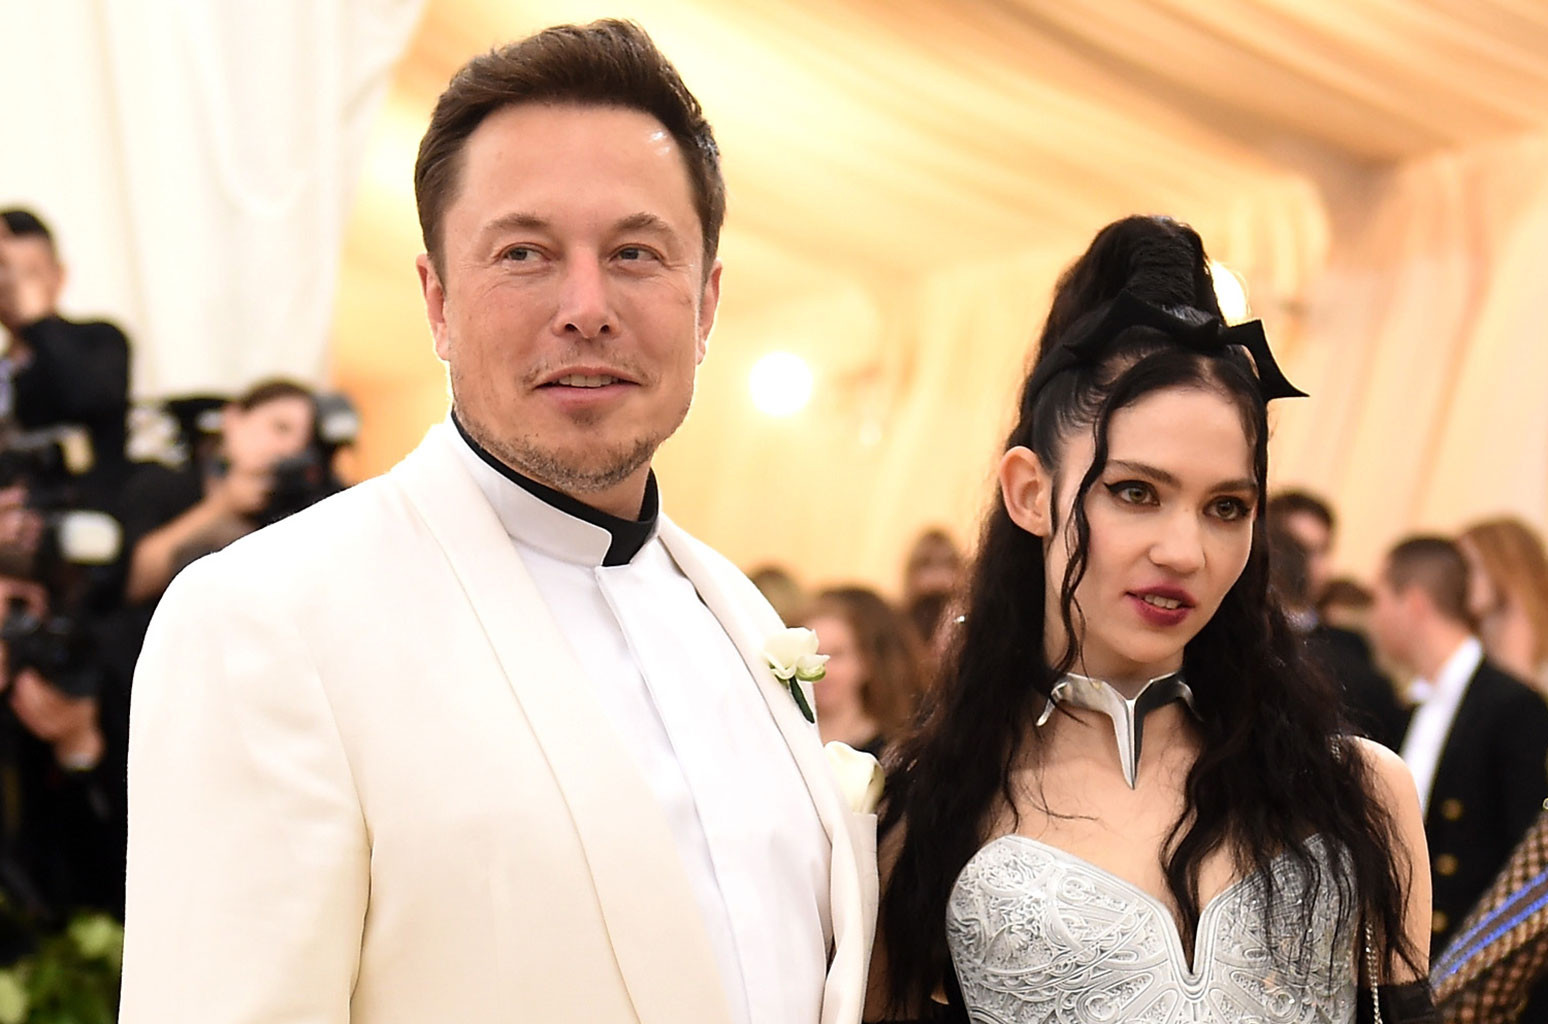 who is elon musk dating